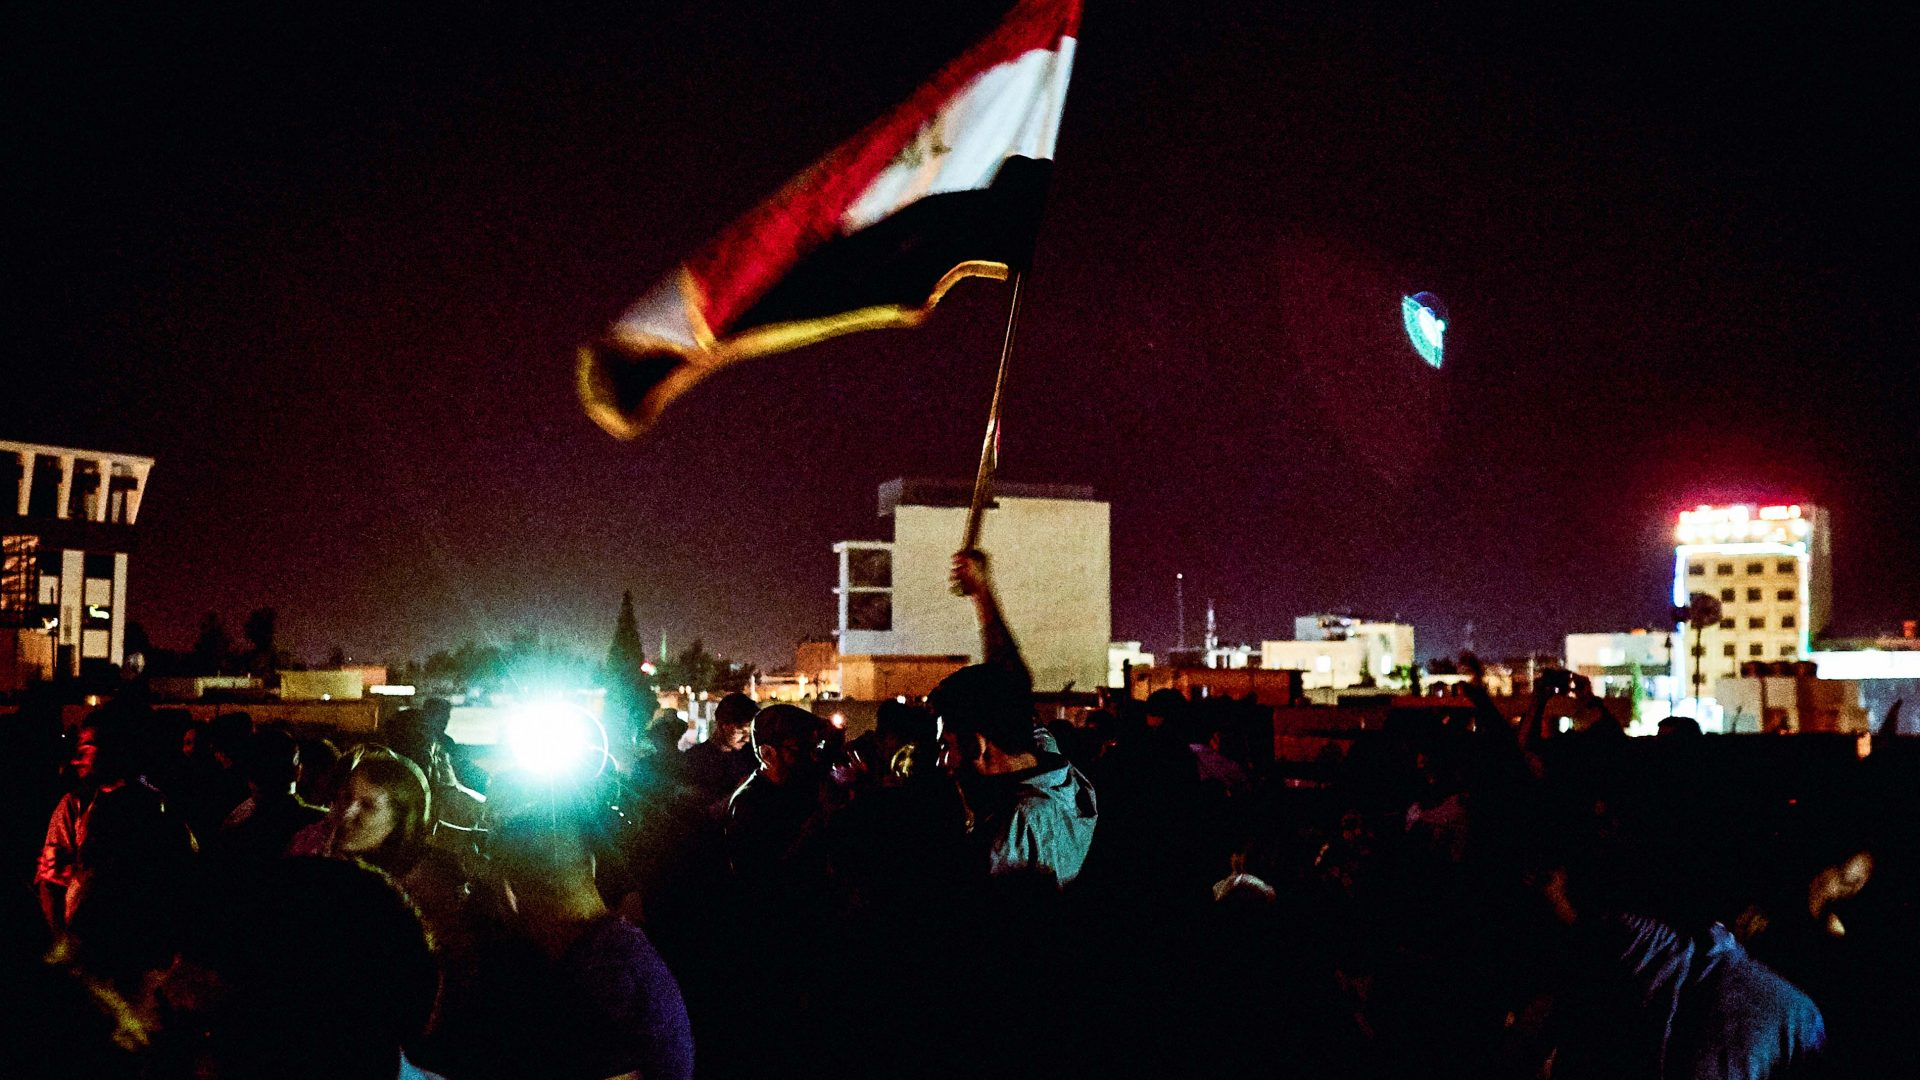 A man can be seen raising the Iraqi flag at an event in Erbil, Iraq.